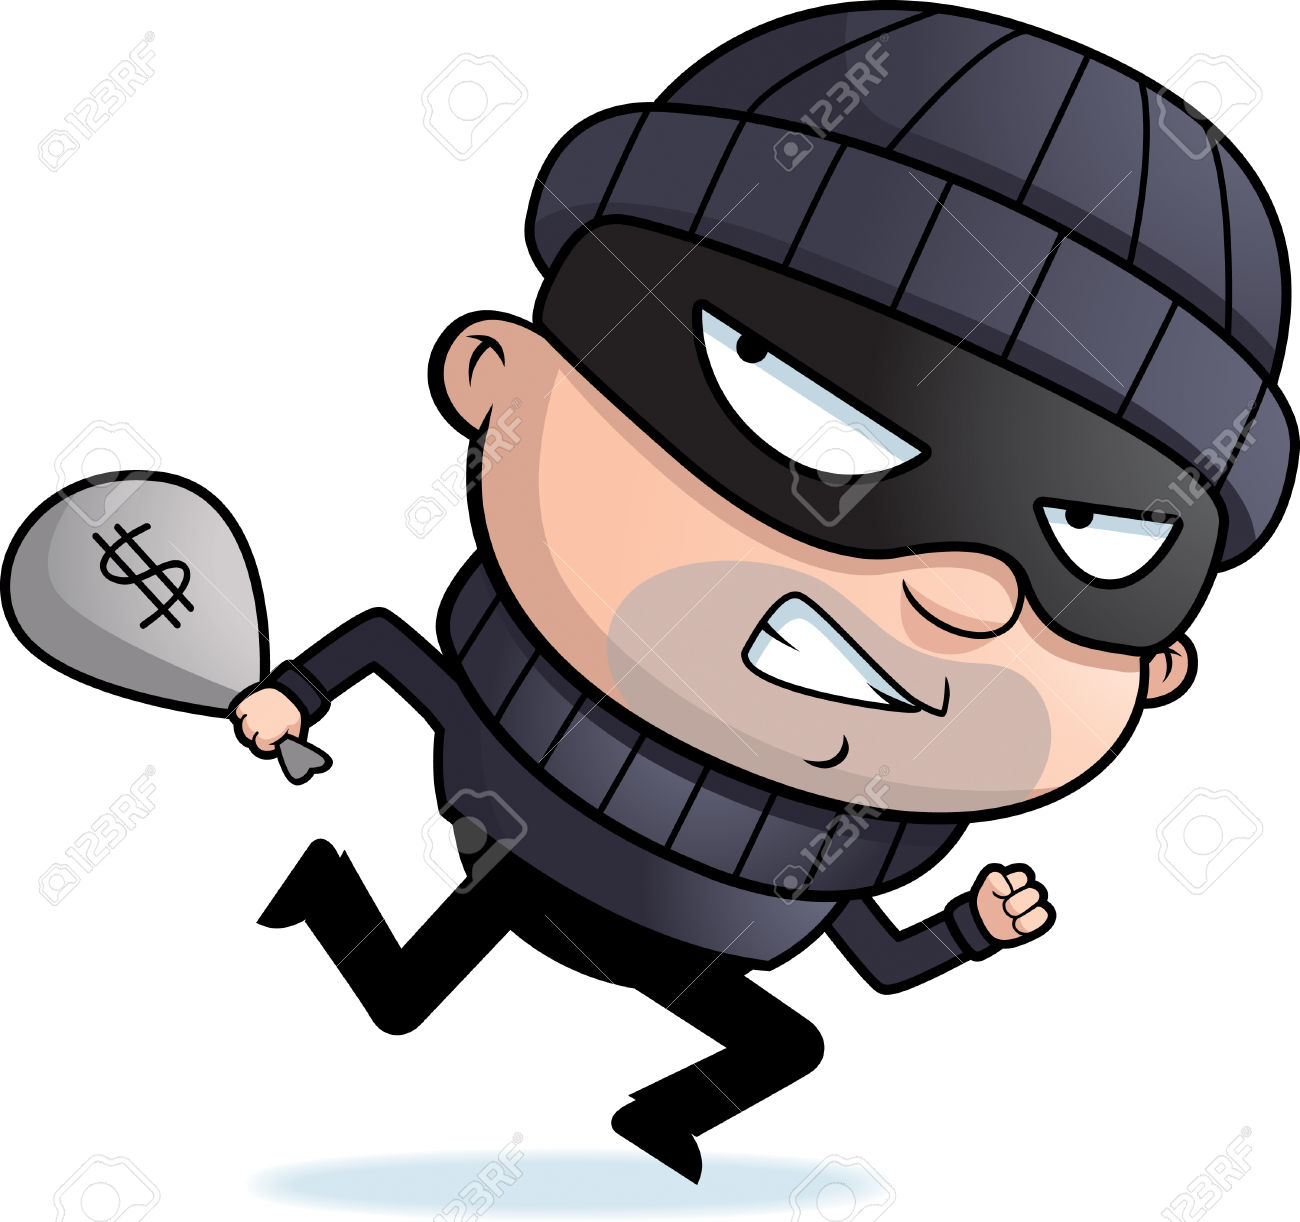 189 Robbing Stock Illustrations, Cliparts And Royalty Free Robbing.